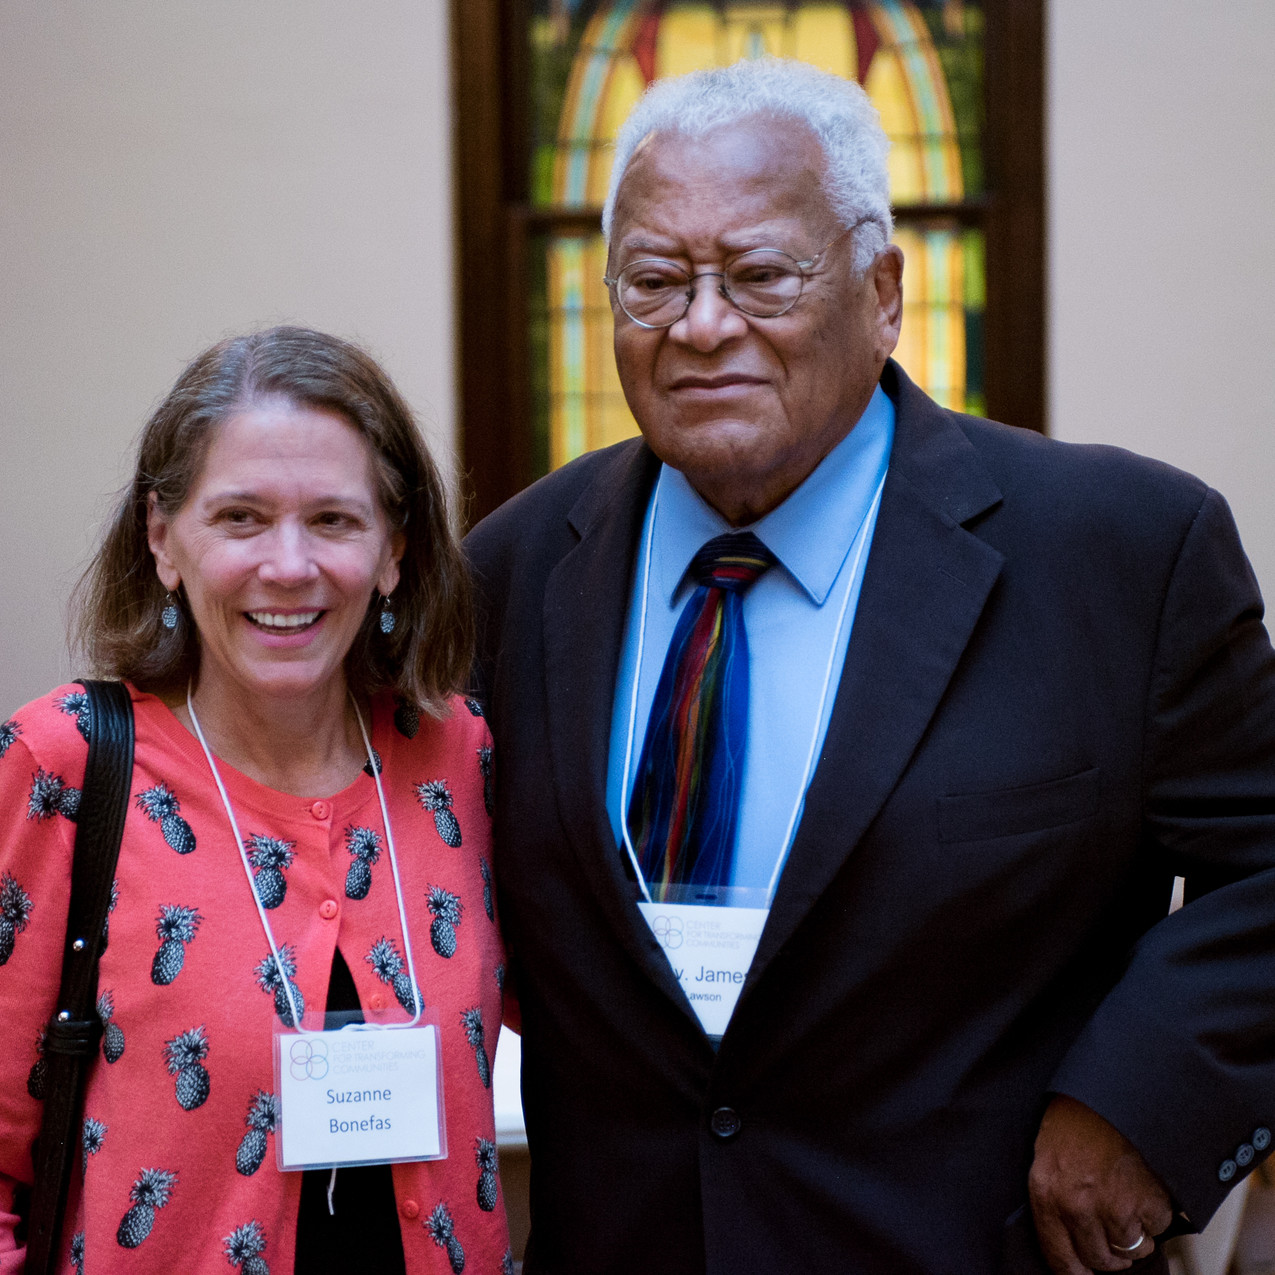 Suzanne Bonefas and James Lawson